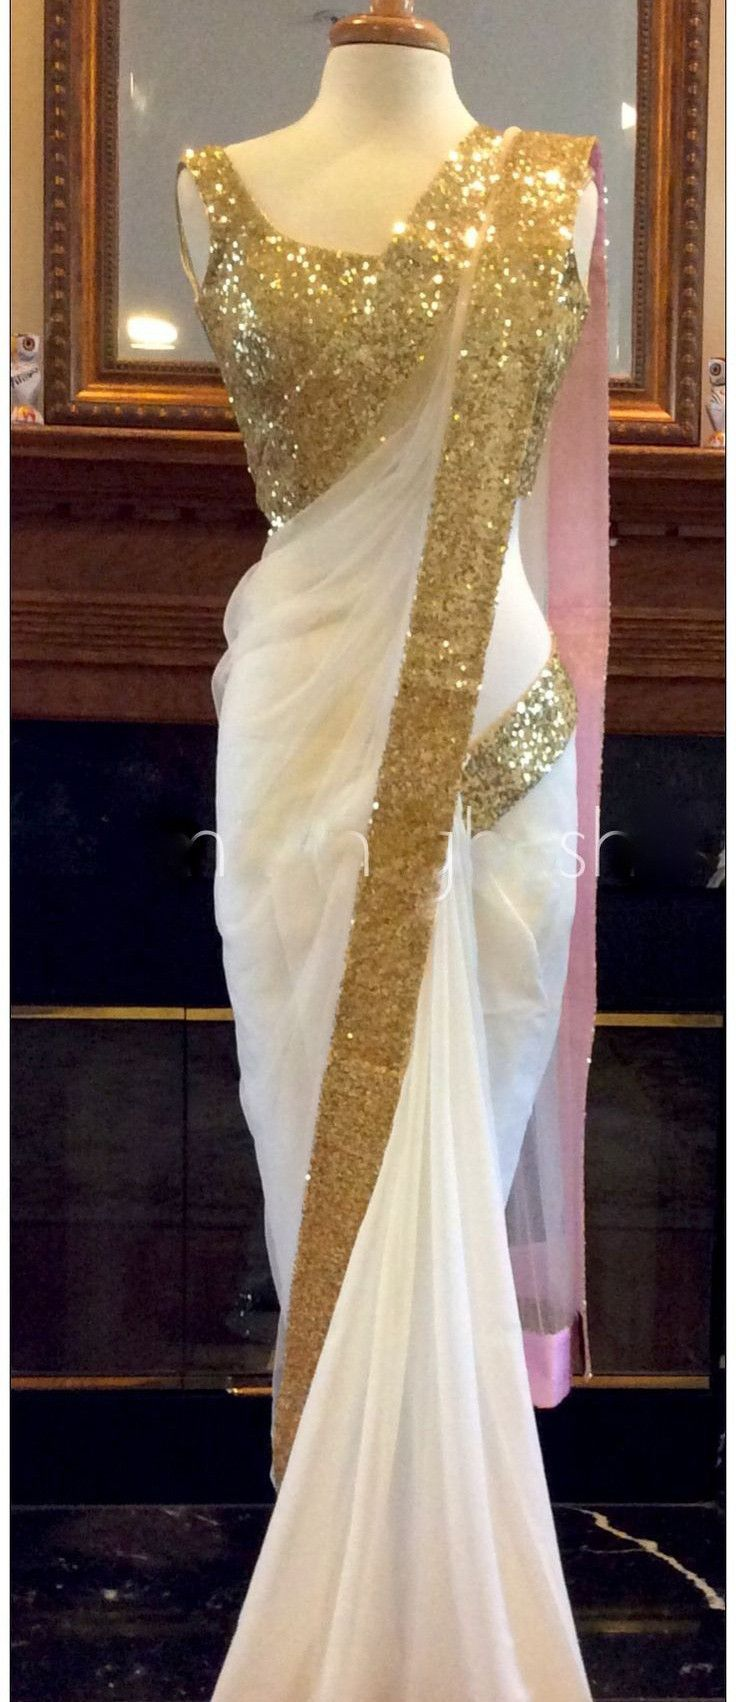 White Color Georgette Saree - Rs. 1899.00